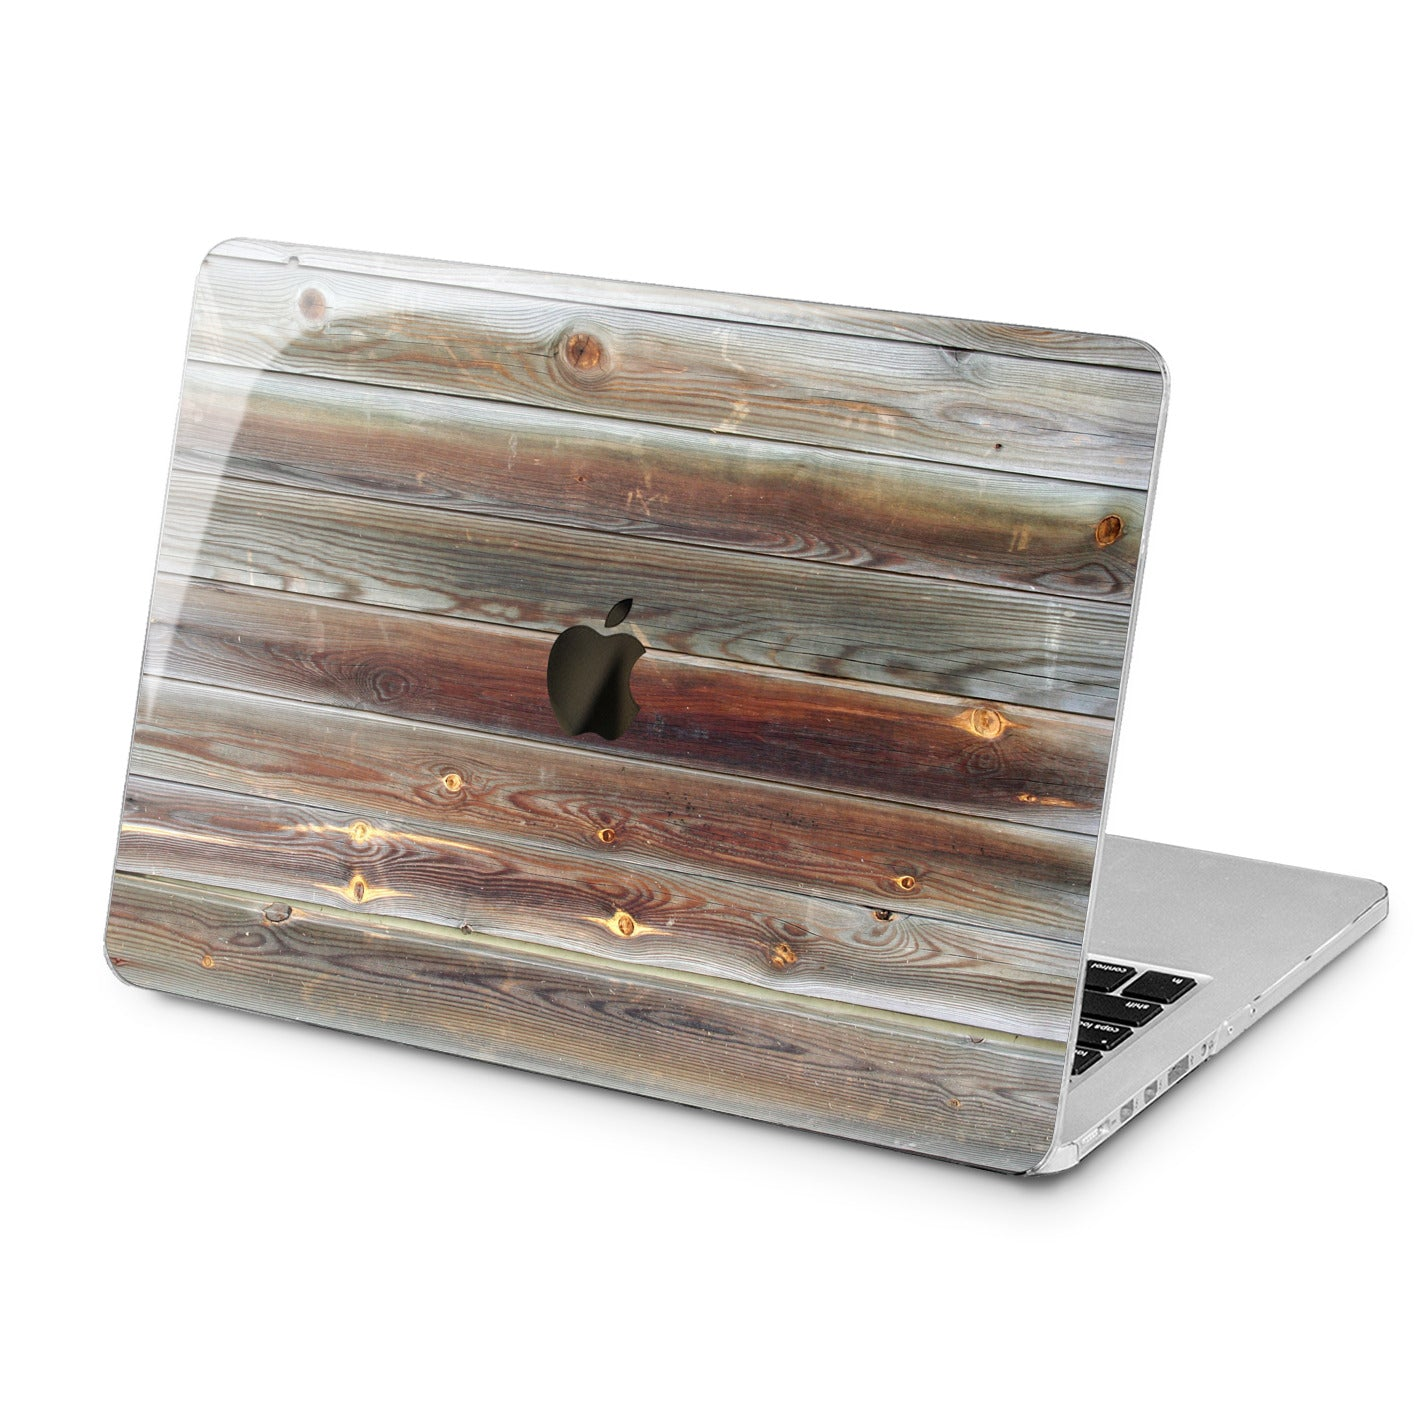 Lex Altern Lex Altern Old Wood Case for your Laptop Apple Macbook.